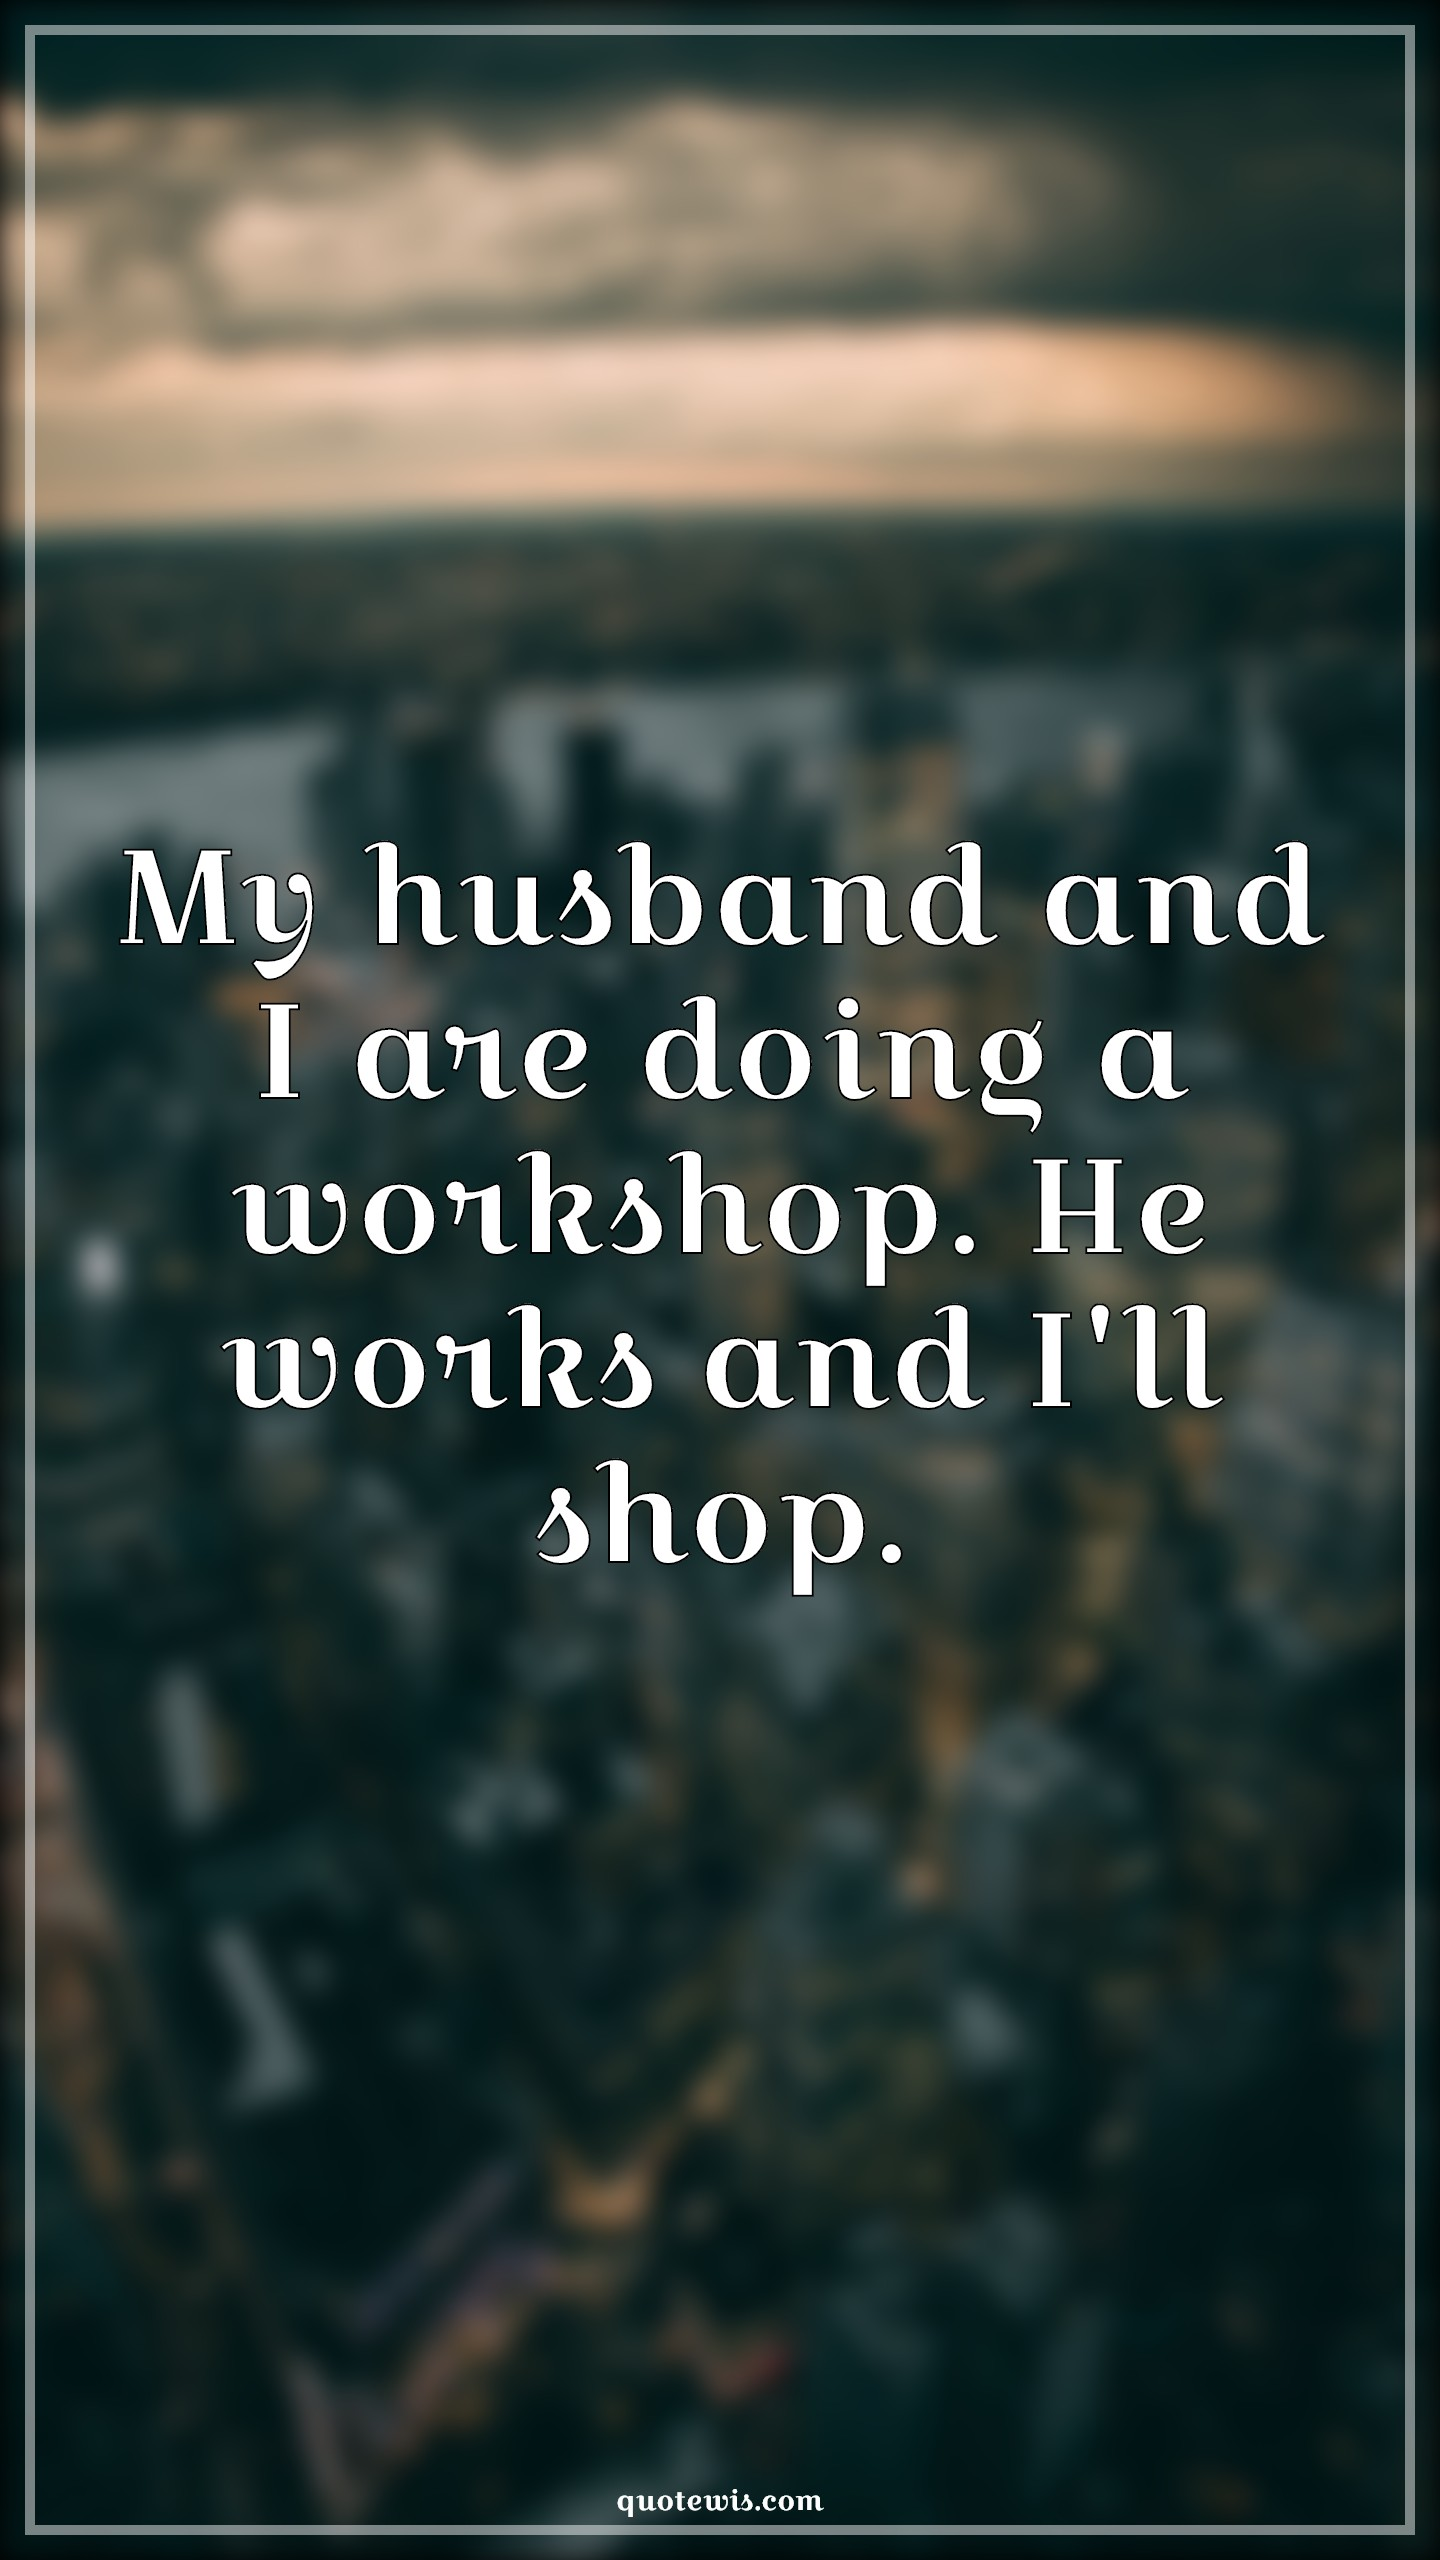 My husband and I are doing a workshop. He works and I'll shop.